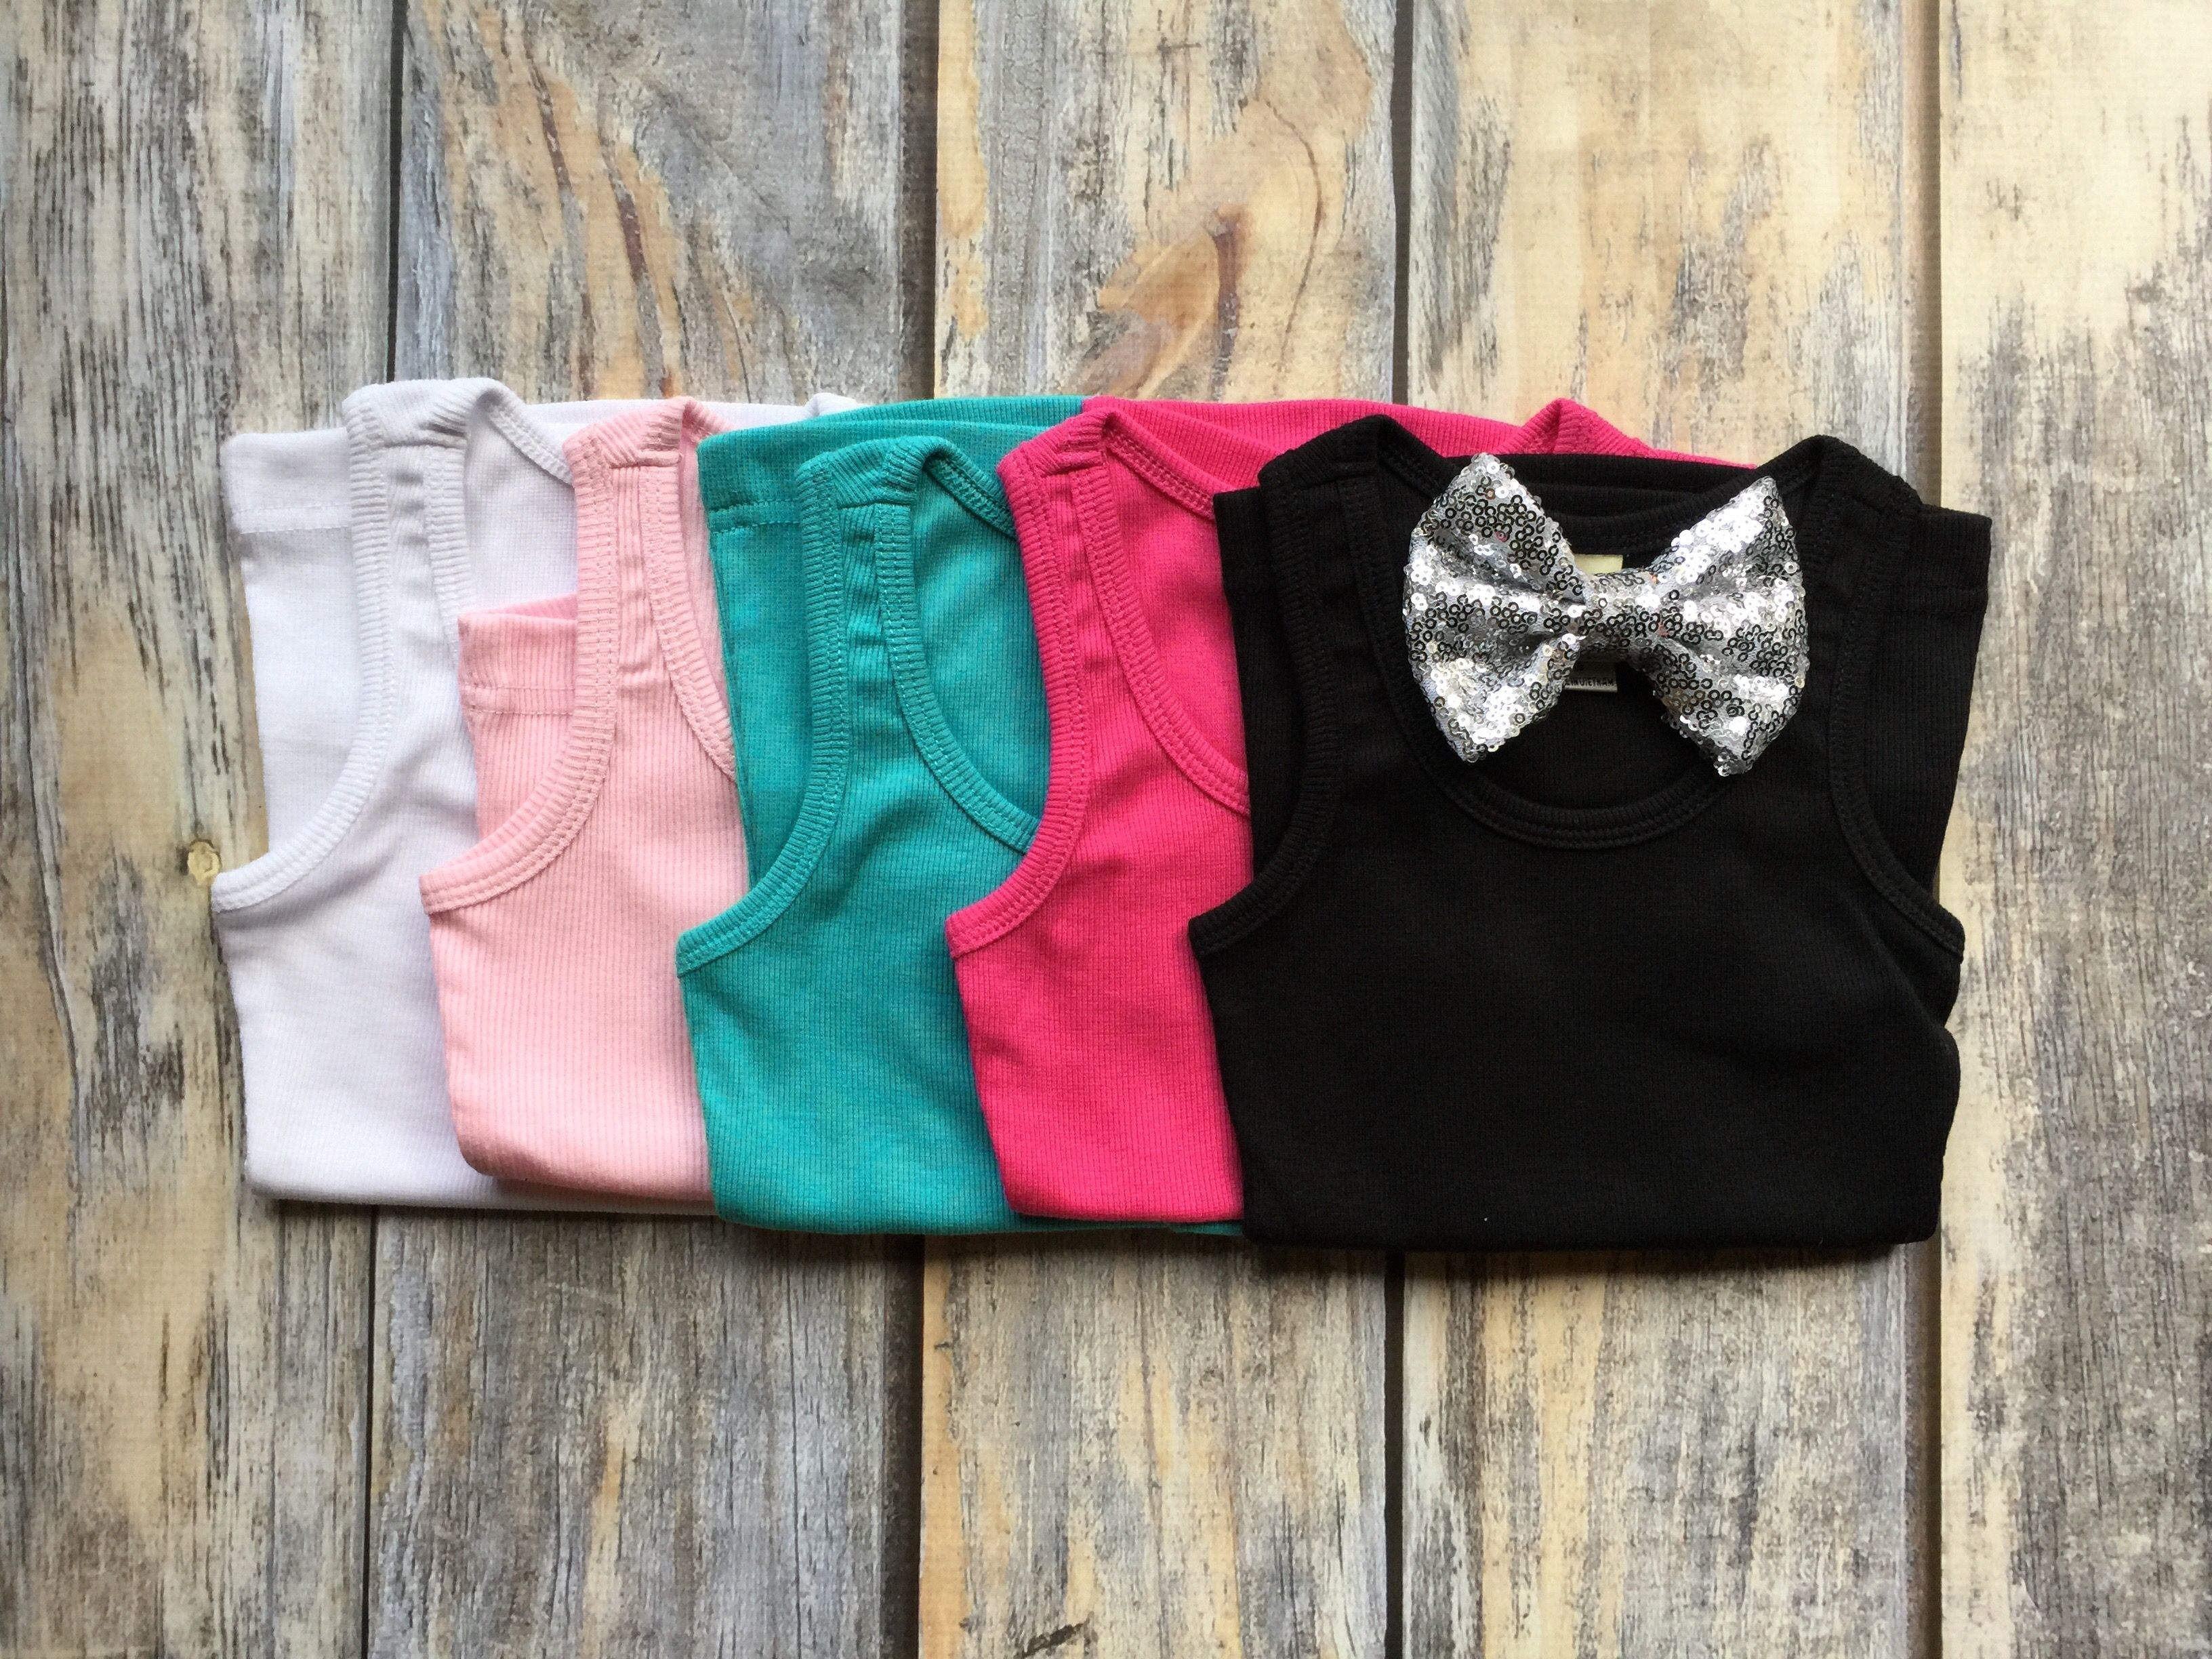 Pin By The Little Kitten Boutique On The Little Kitten Boutique Flower Girl Shirts Girls Tshirts Shirts For Girls